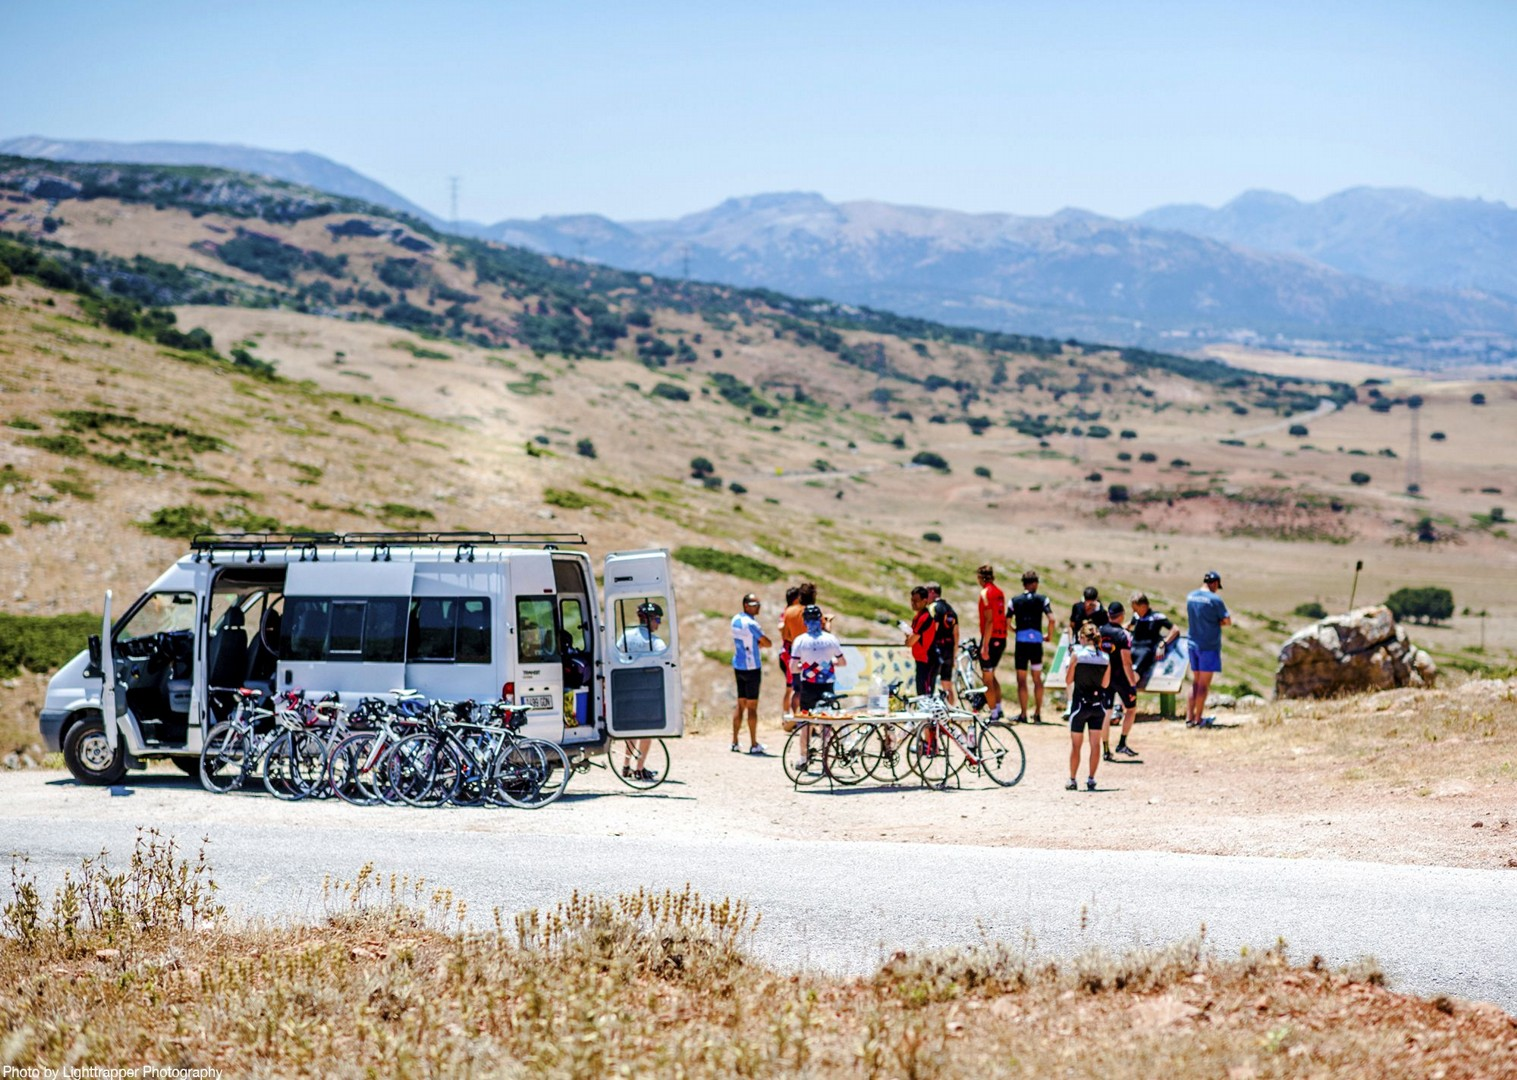 group-picnics-lunch-guided-tour-road-cycling-fun-spain.jpg - Southern Spain - Andalucia - Los Pueblos Blancos - Road Cycling